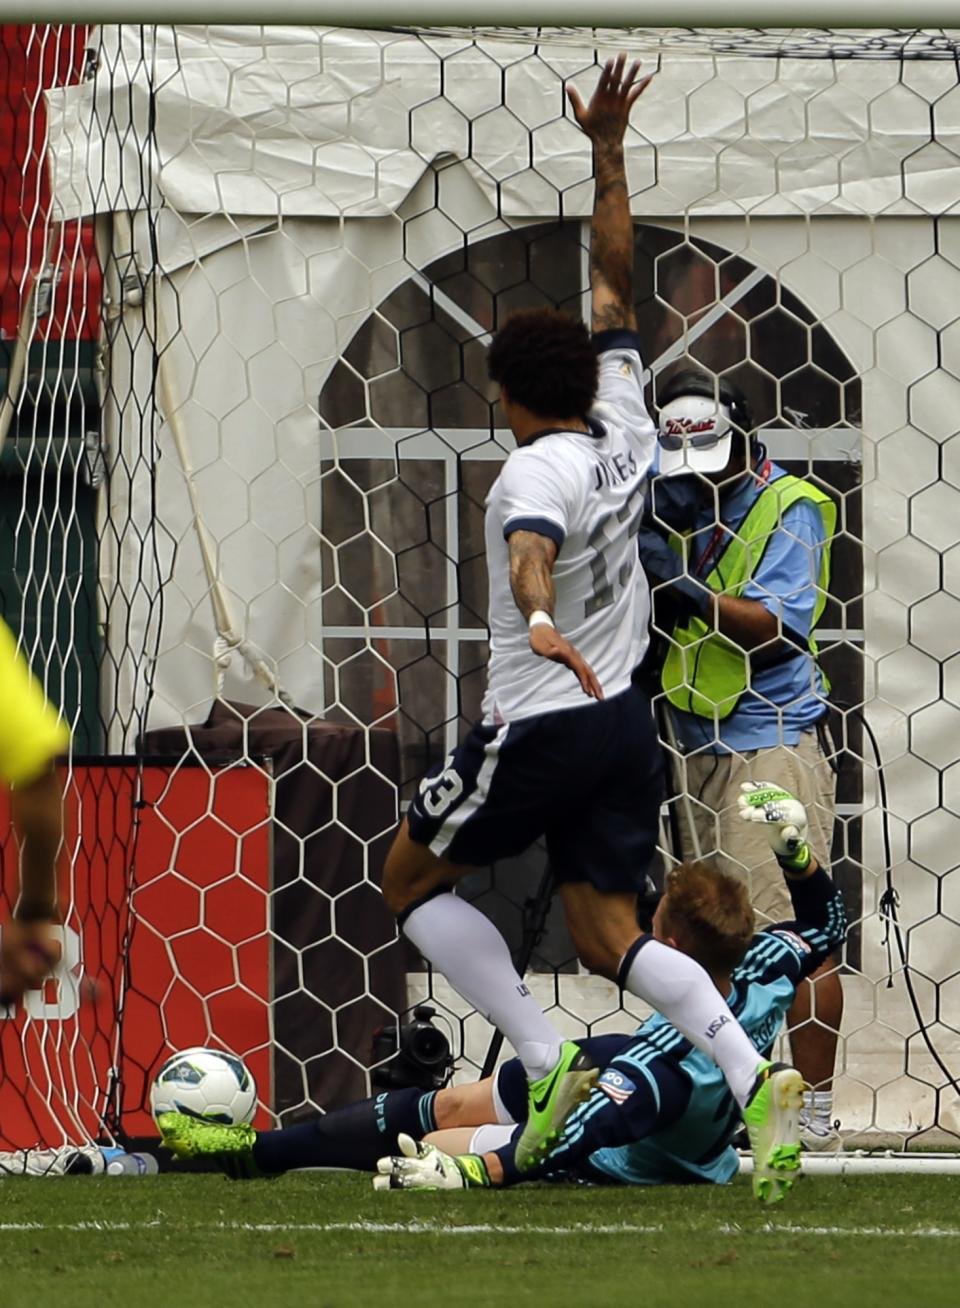 U.S. midfielder Jermaine Jones (13) celebrates as his shot goes past Germany goalkeeper Marc-Andreter Stegen (22) during the first half of an international friendly soccer match at RFK Stadium Sunday, June 2, 2013, in Washington. (AP Photo/Alex Brandon)